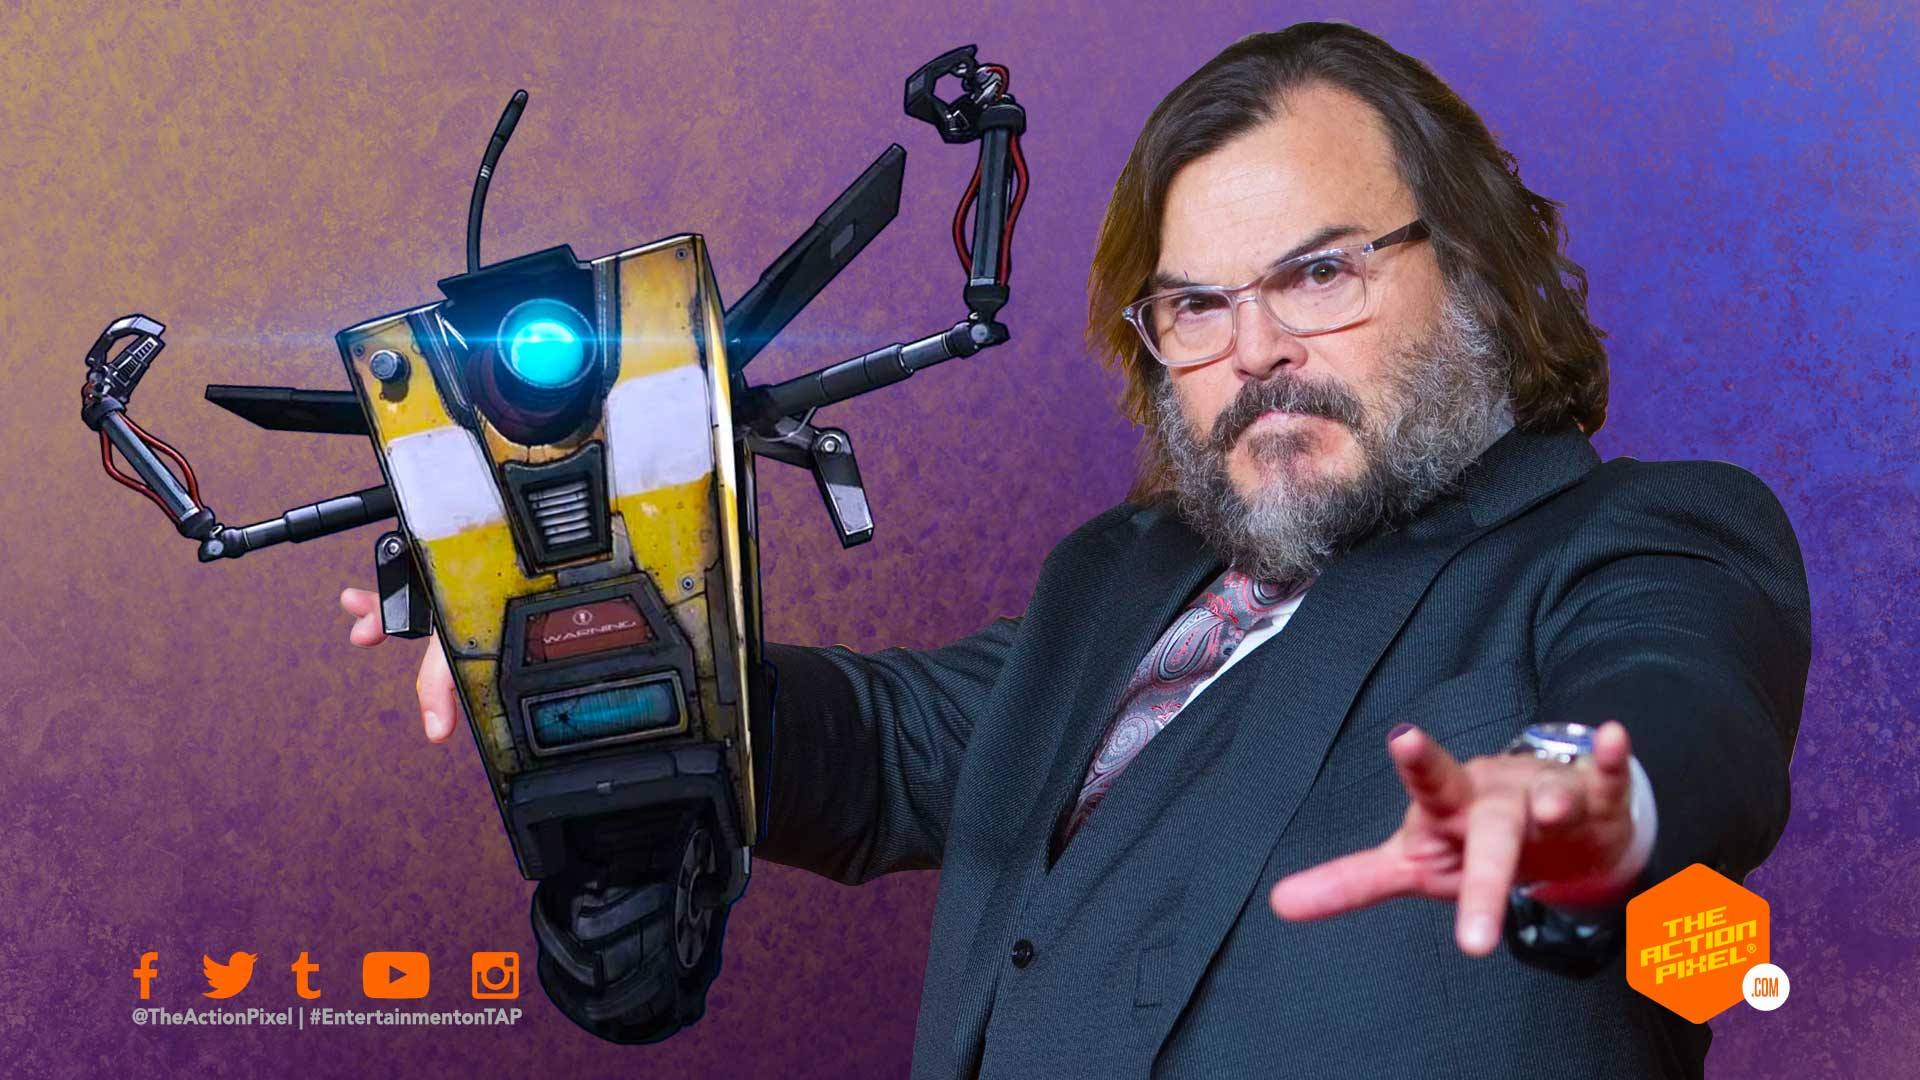 jack black, claptrap,borderlands, gearbox software, entertainment on tap, the action pixel, featured, eli roth, gearbox software,the action pixel, entertainment on tap, featured, borderlands,